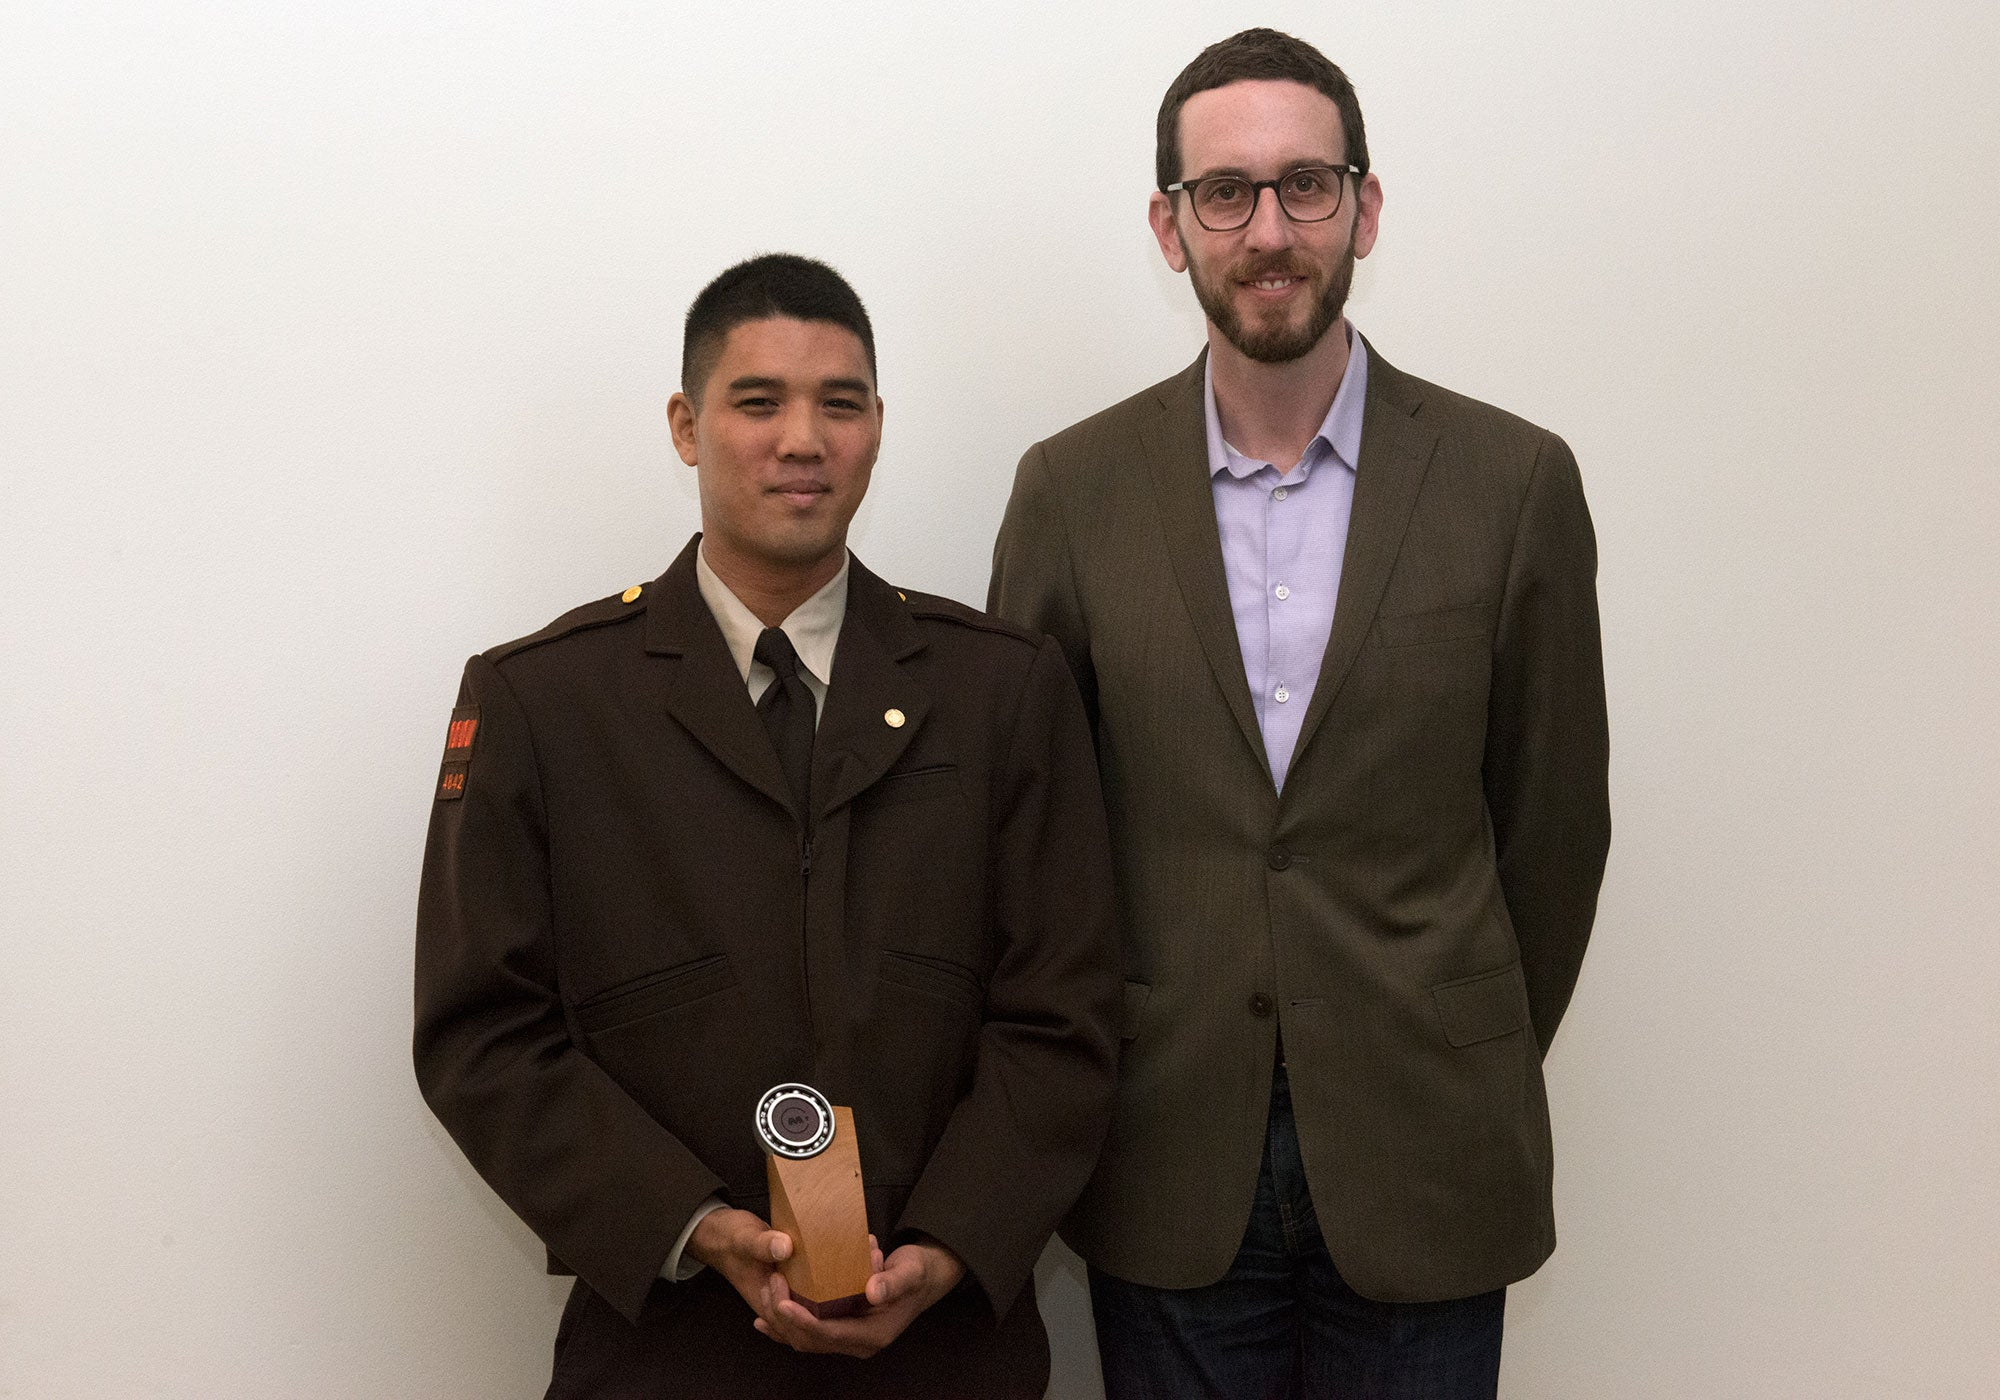 Jose Macasocol poses with MTC Commissioner Scott Wiener after receiving his award trophy